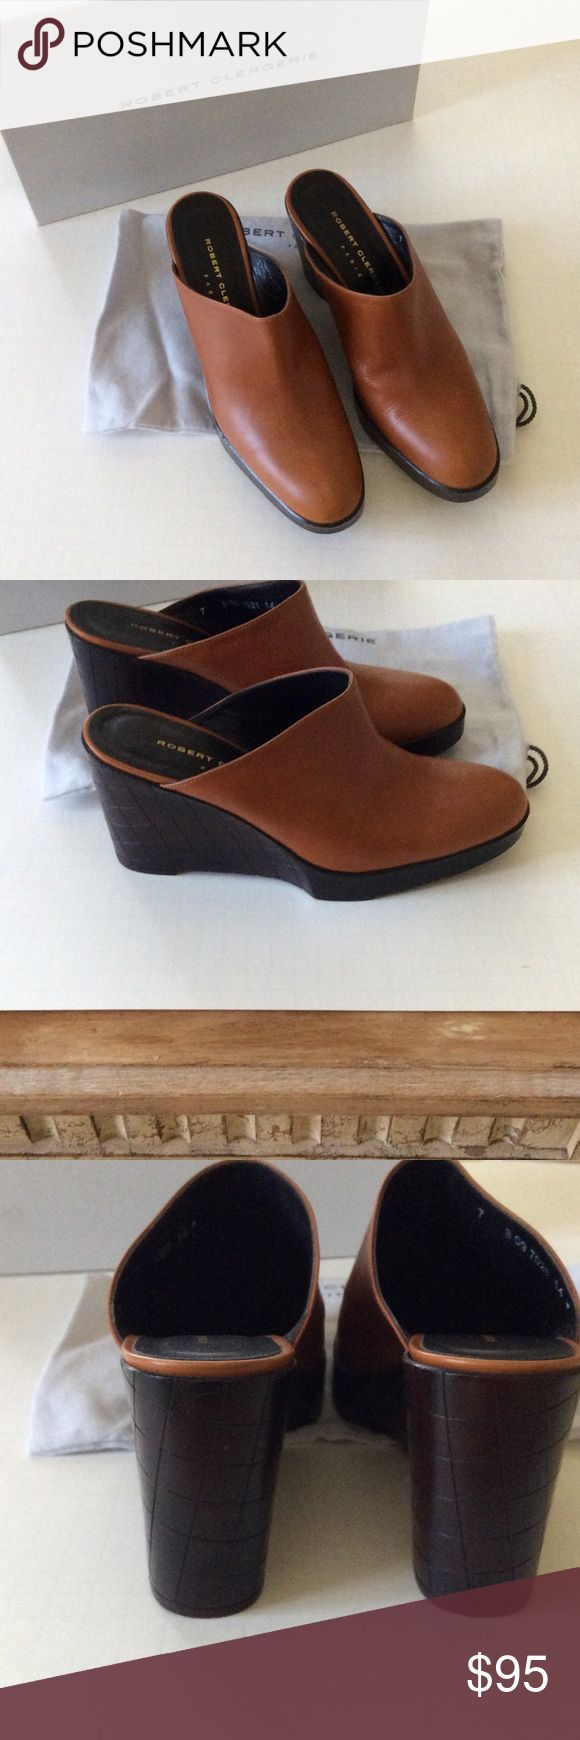 """Robert clergerie platform mule Beautiful calf leather platform mule with 3 1/2"""" heel..like new worn once Robert clergerie Shoes Mules & Clogs"""